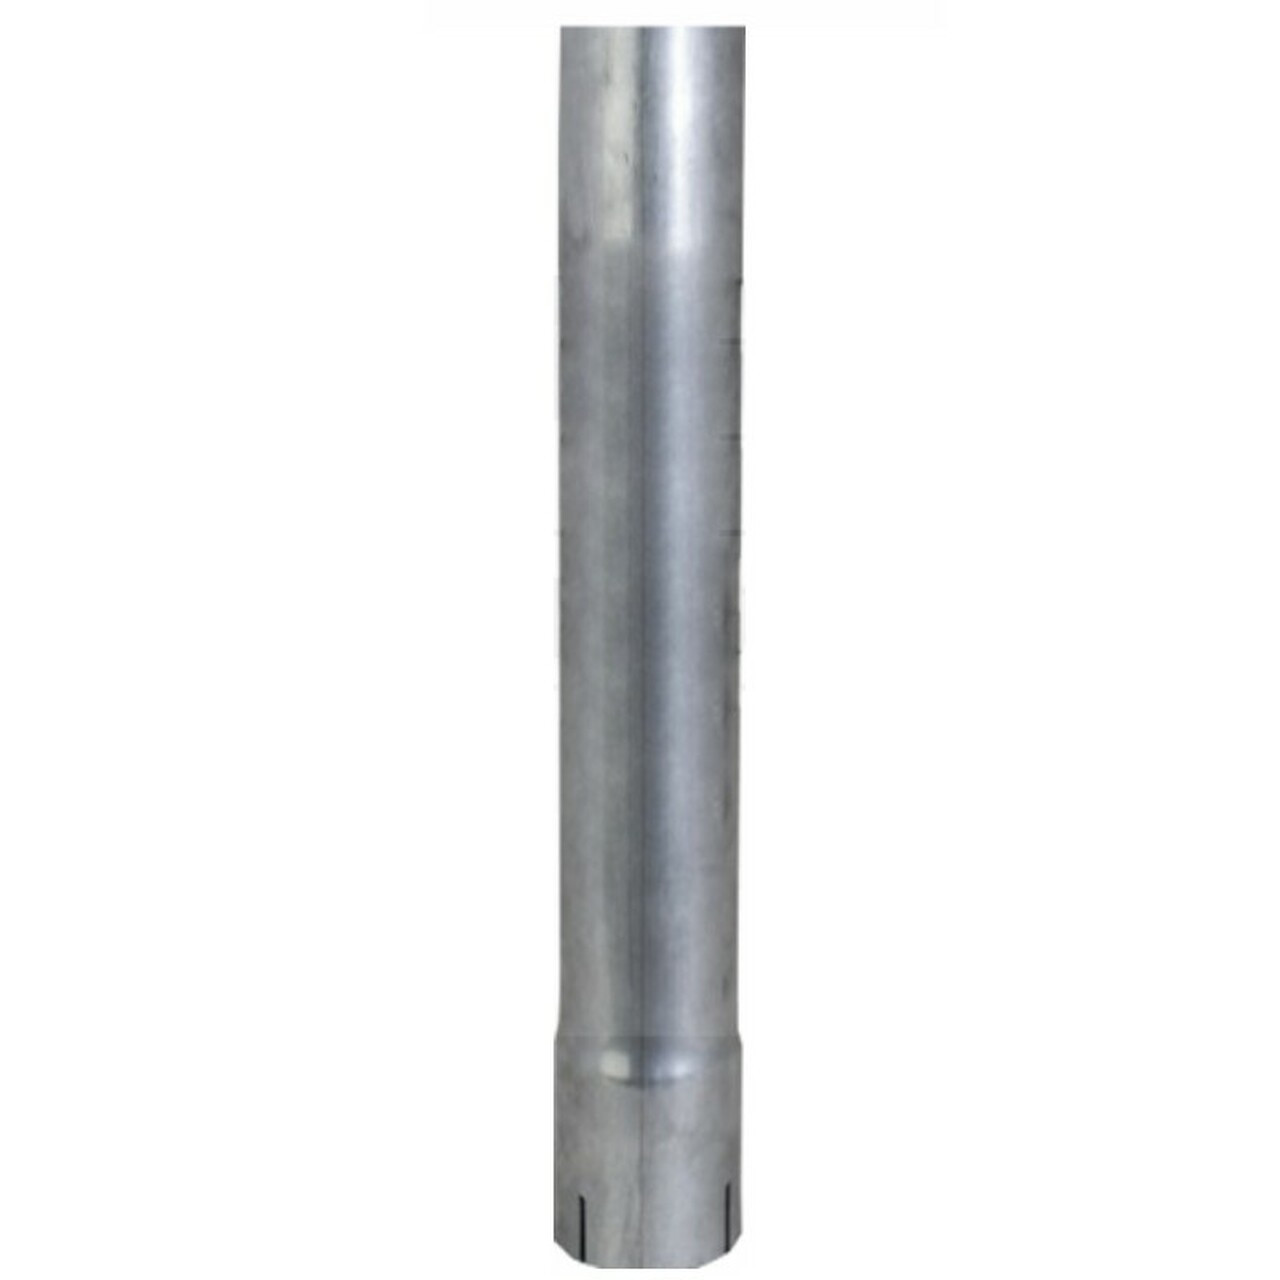 "2.5"" x 48"" Straight Exhaust Stack Pipe Aluminized ID Bottom Nelson 89209A"